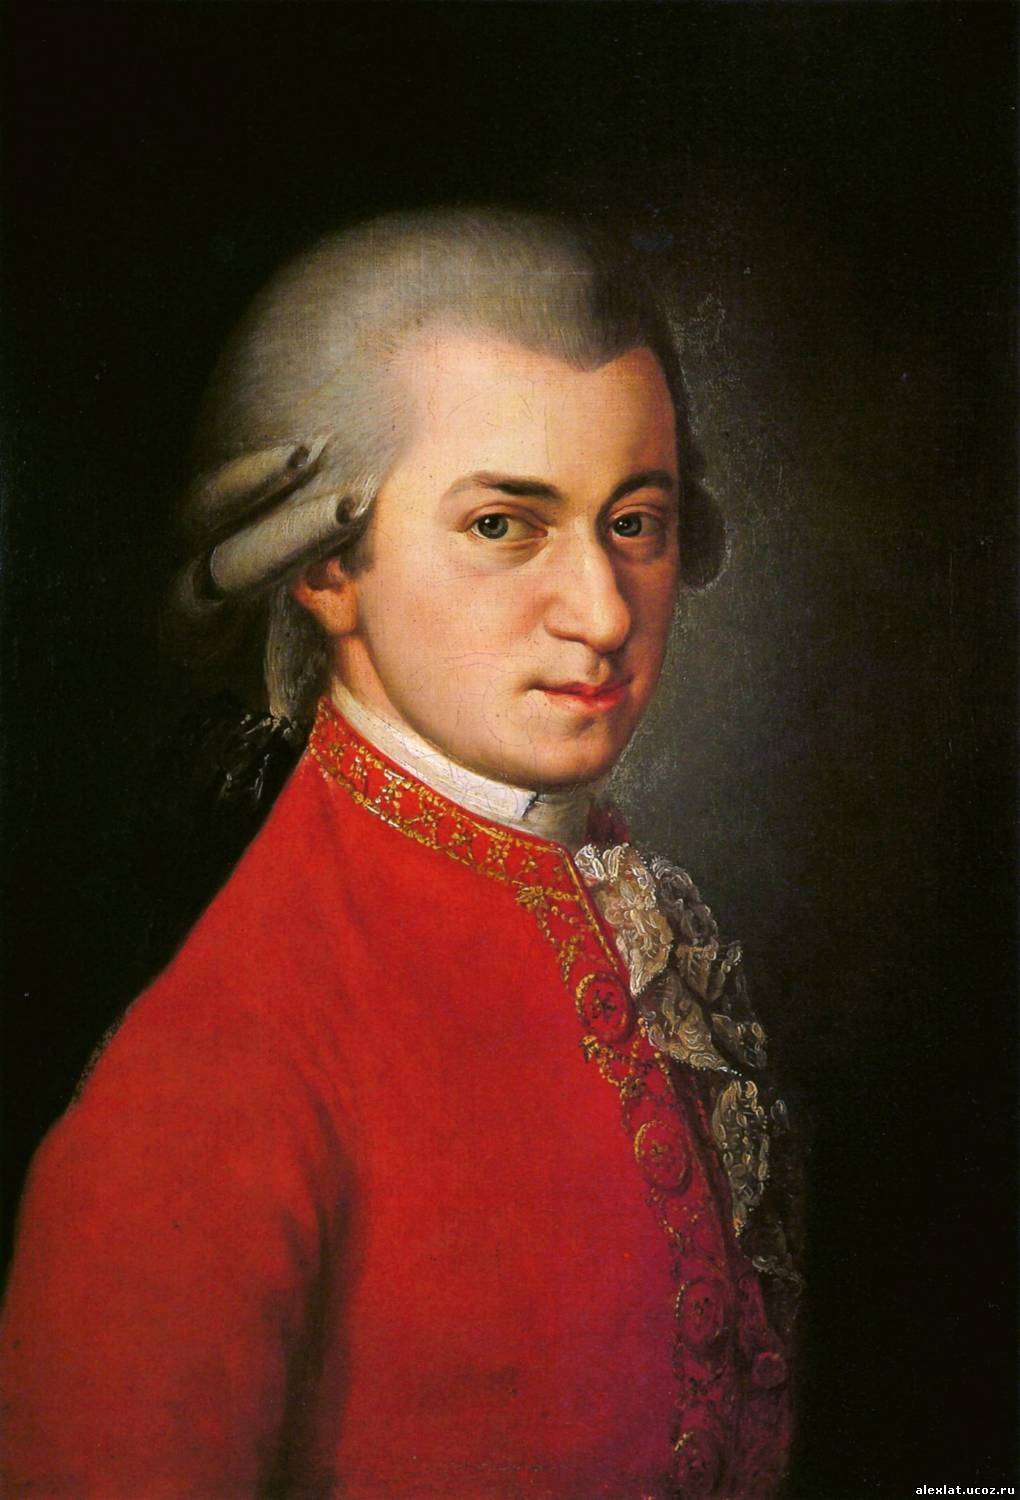 Mozart: Symphony #40 in G Minor, K.550